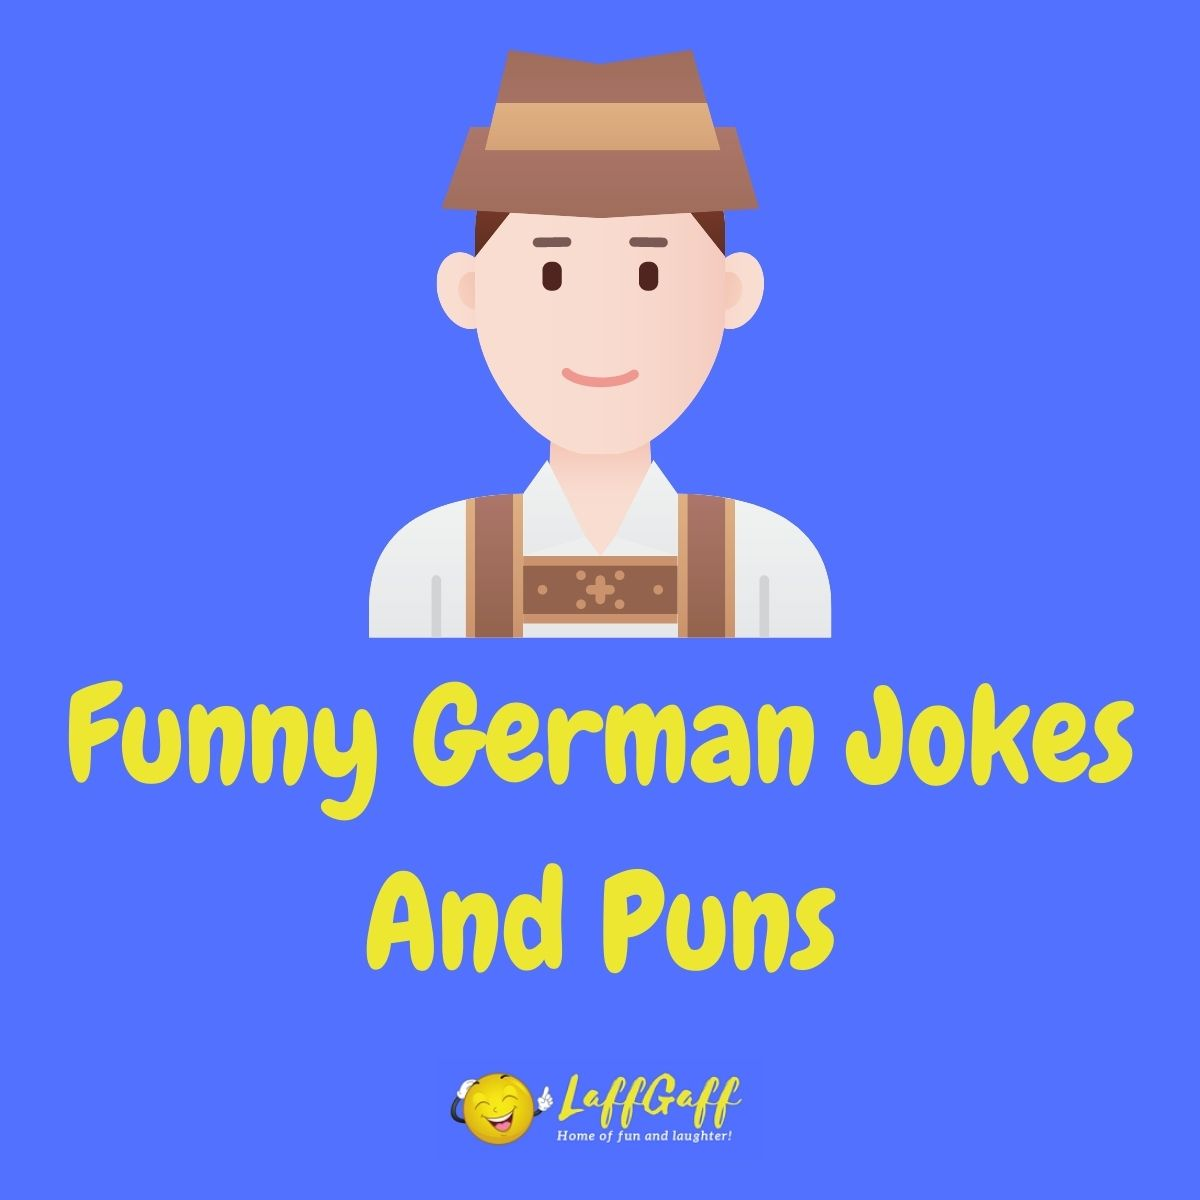 Featured image for a page of funny German jokes and puns.